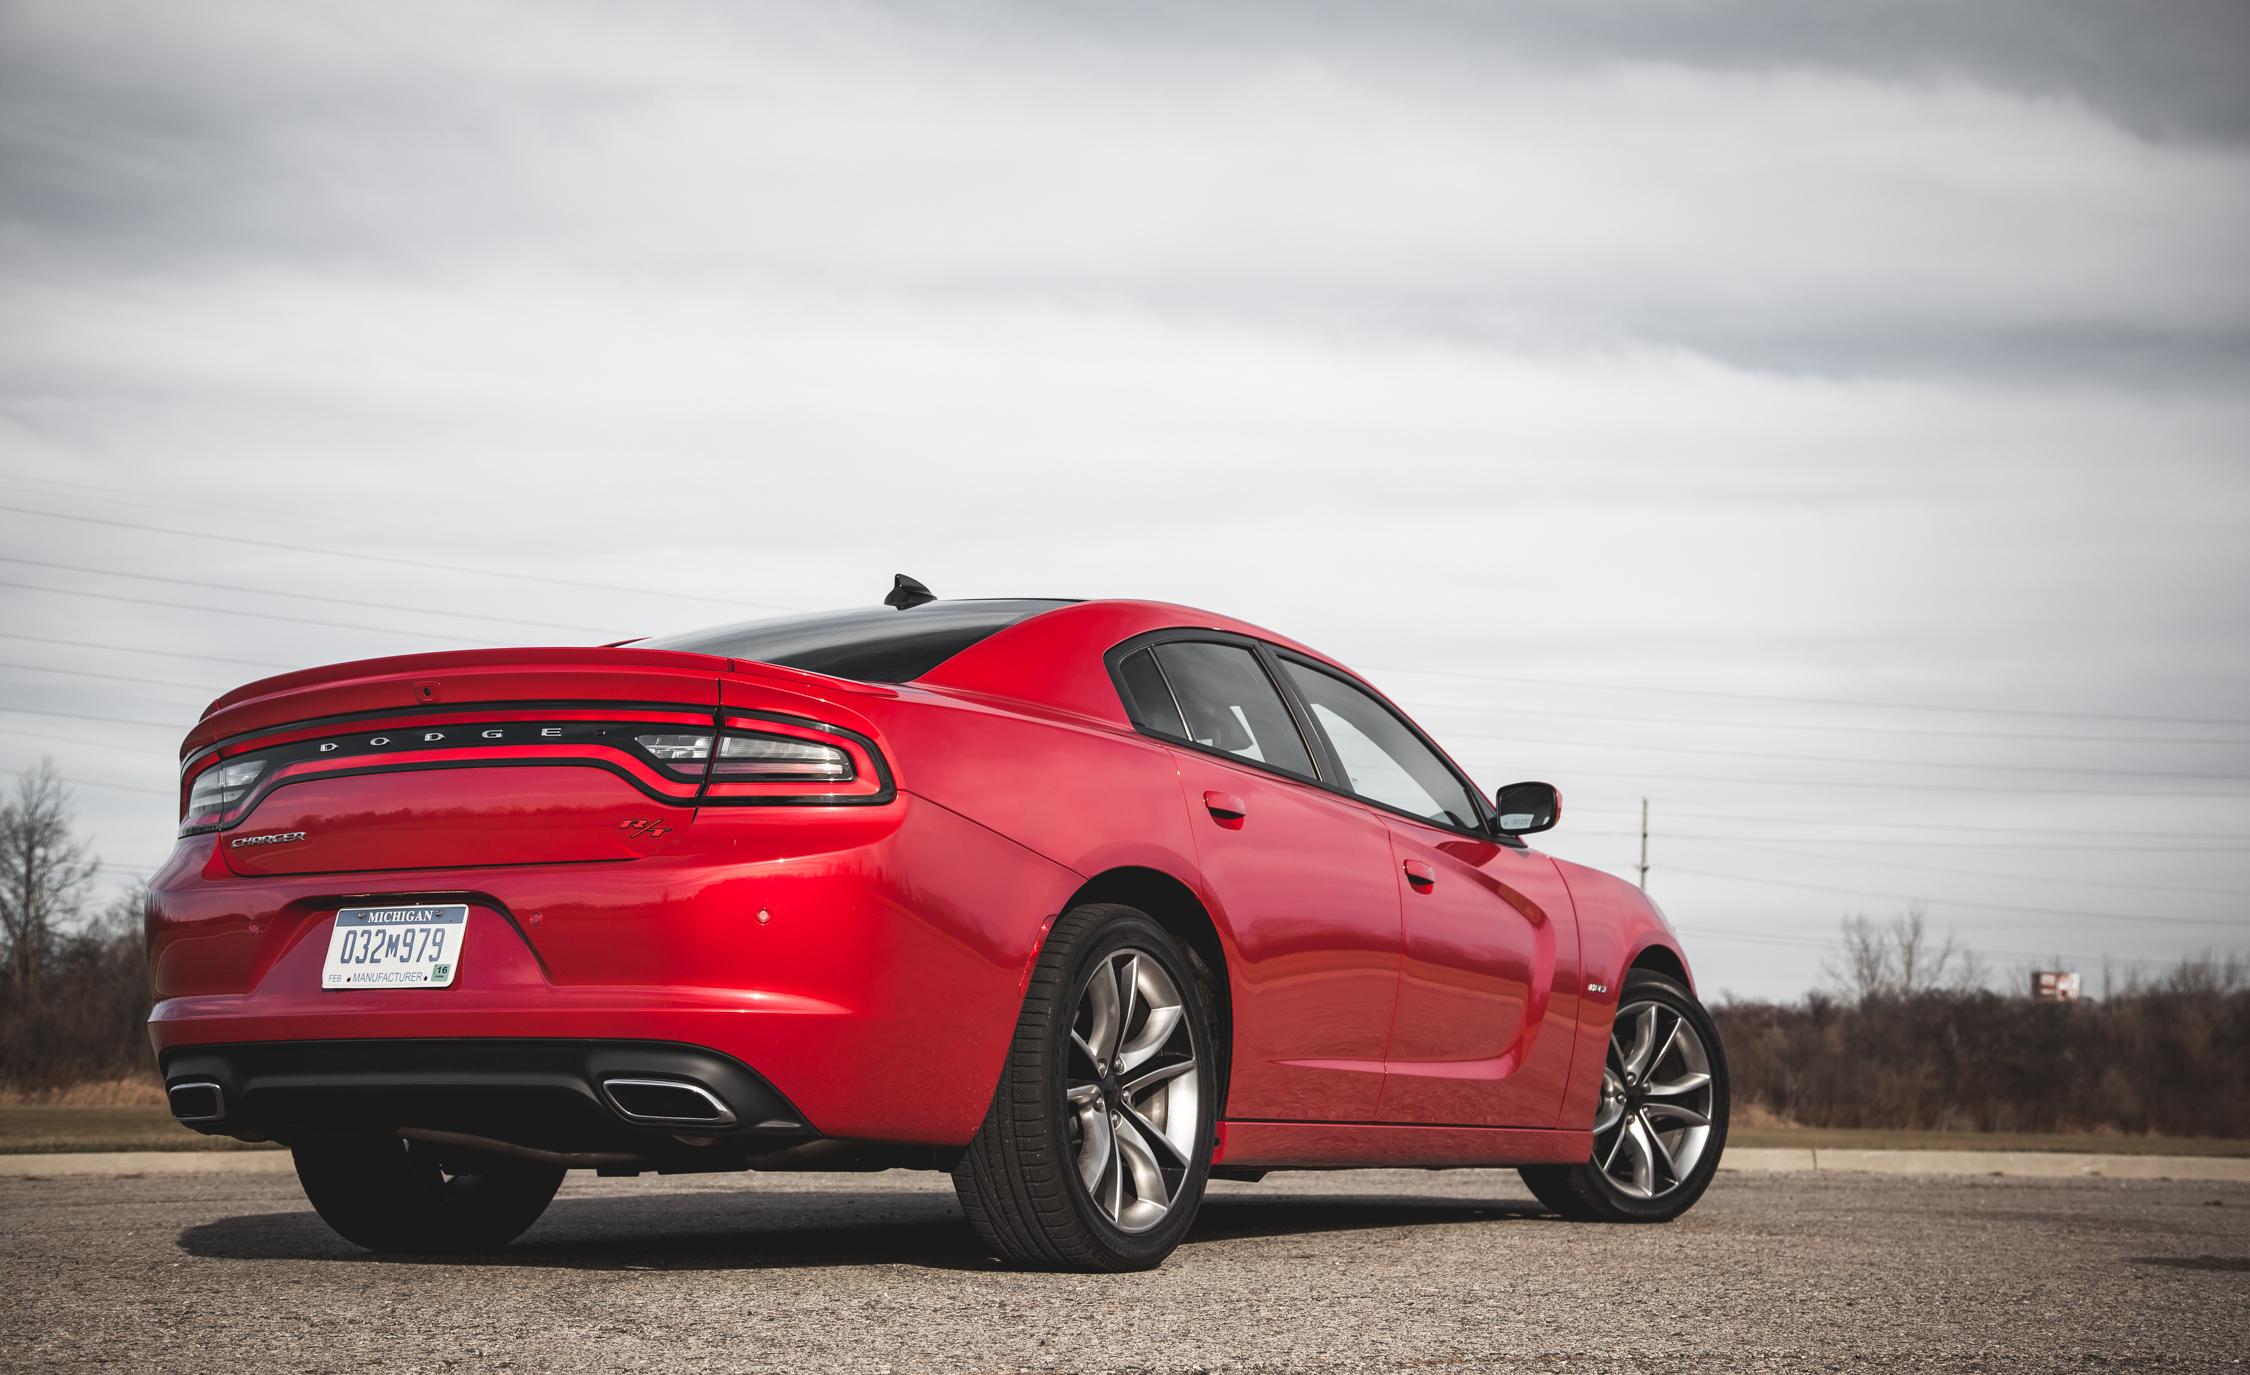 2015 Dodge Charger R/T Exterior Rear and Side View